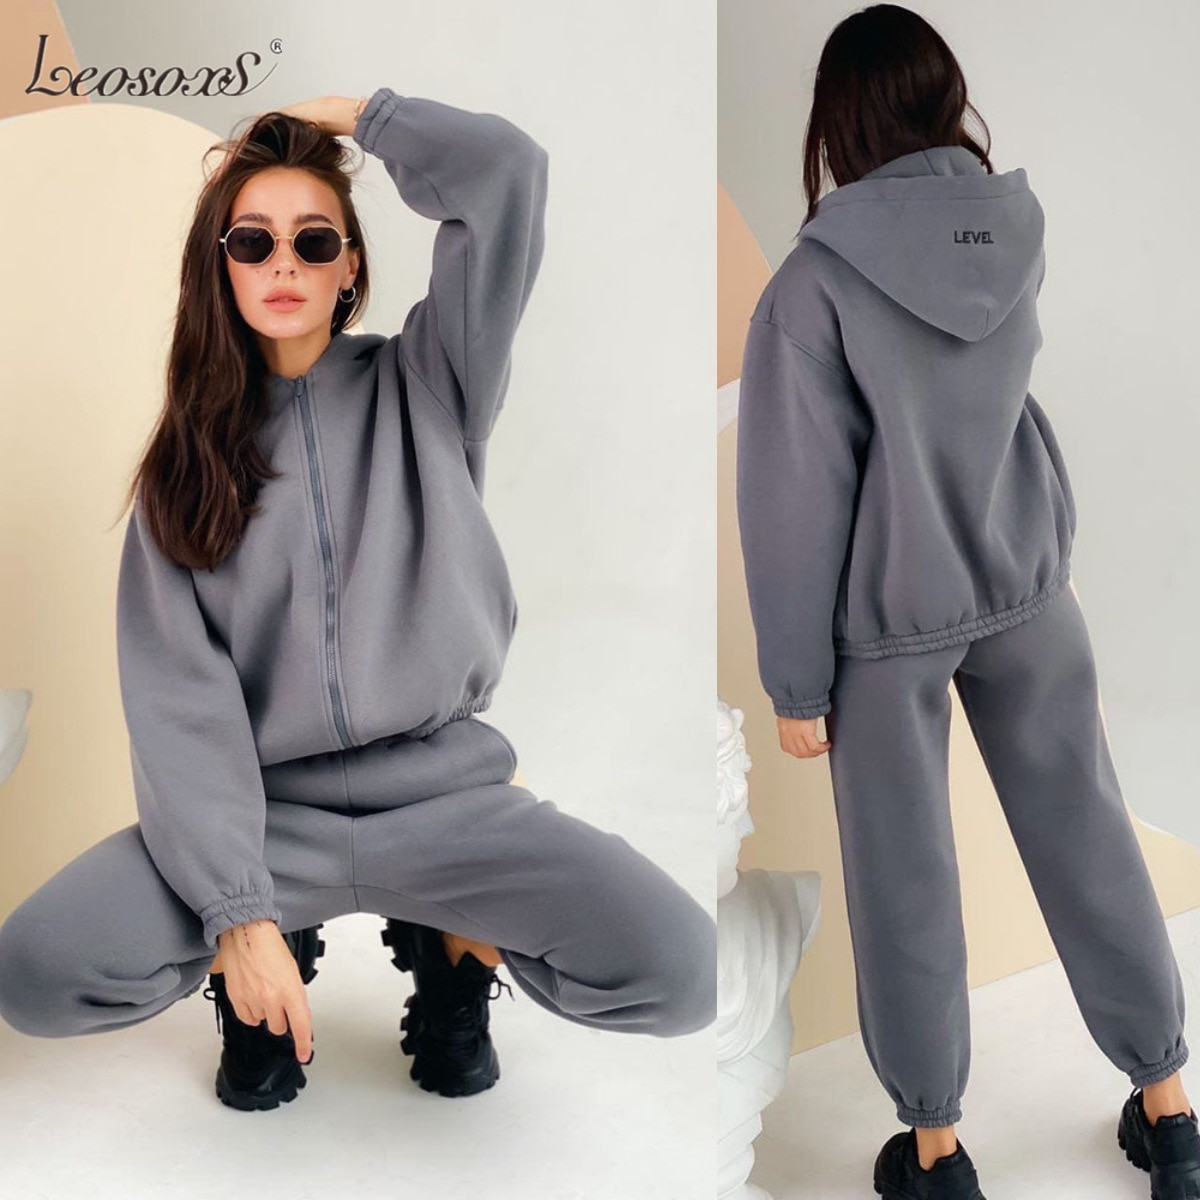 Casual Tracksuit Women Two Piece Set 2021 New Solid Long Sleeve Zipped Sweatshirt Tops Sweatpant Suit Outfit Matching